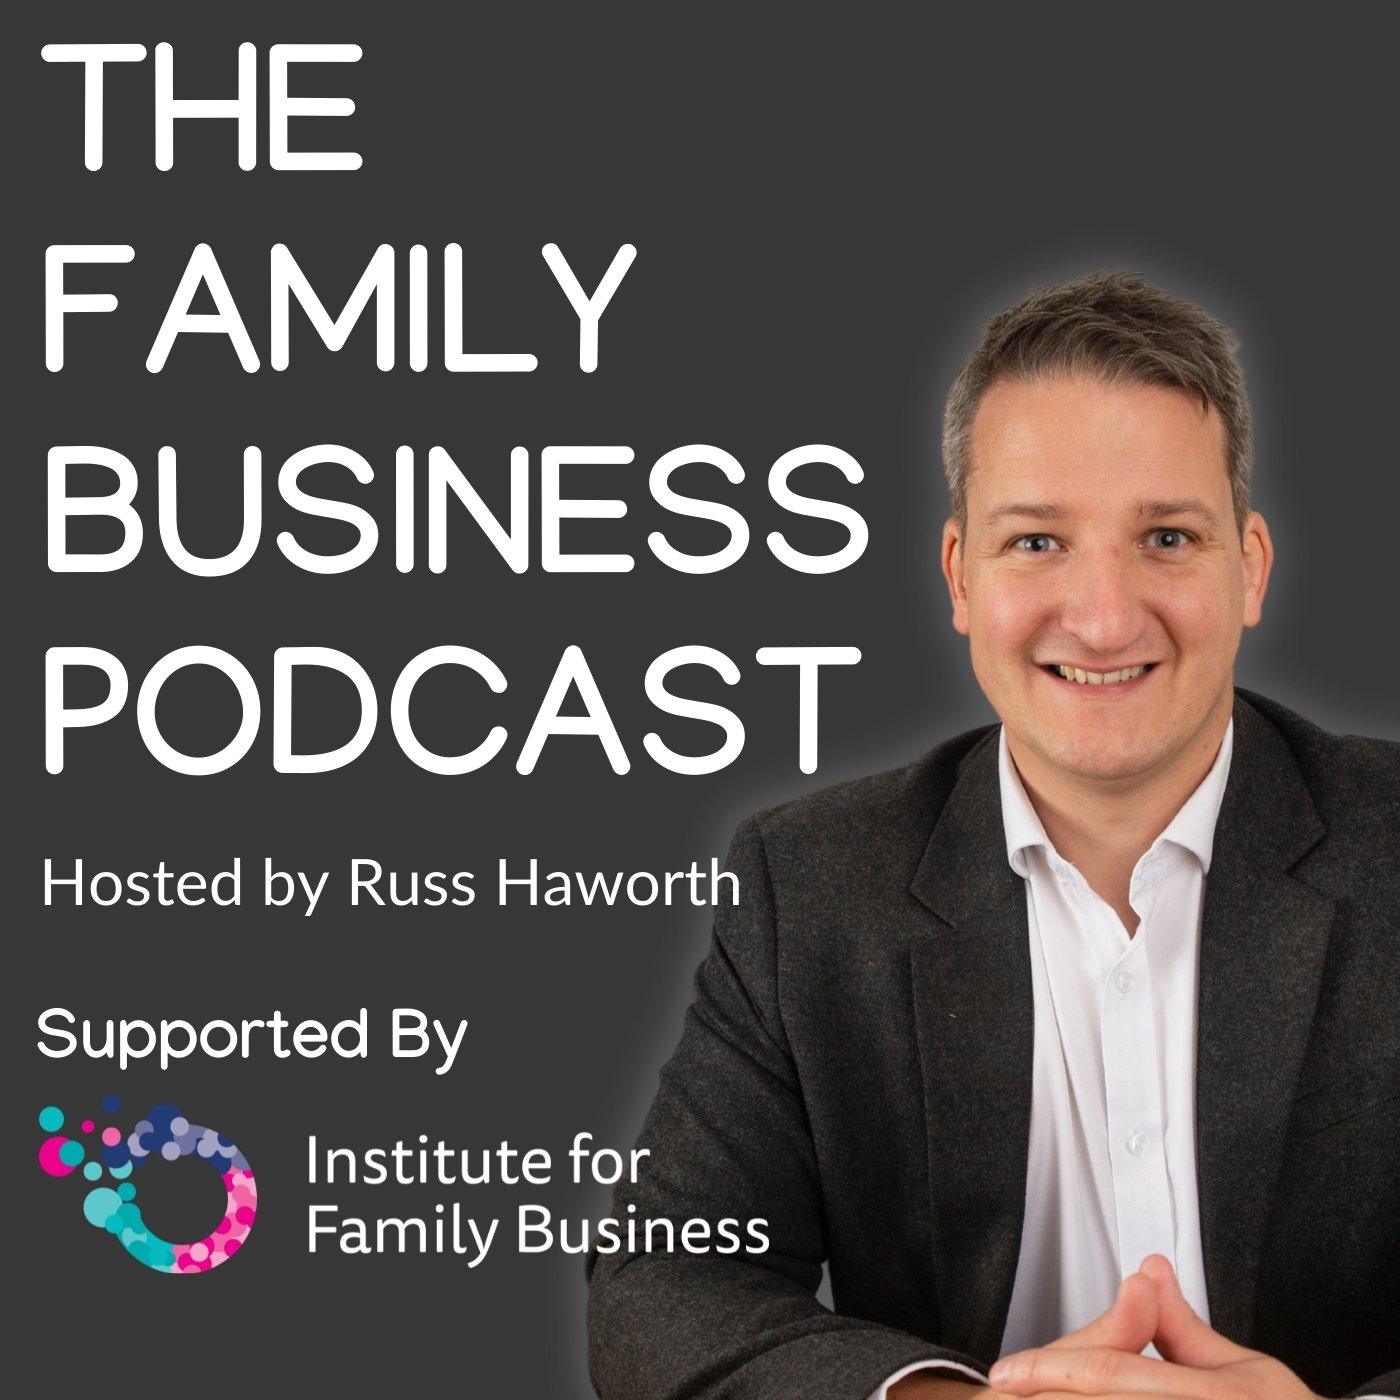 Artwork for podcast The Family Business Podcast